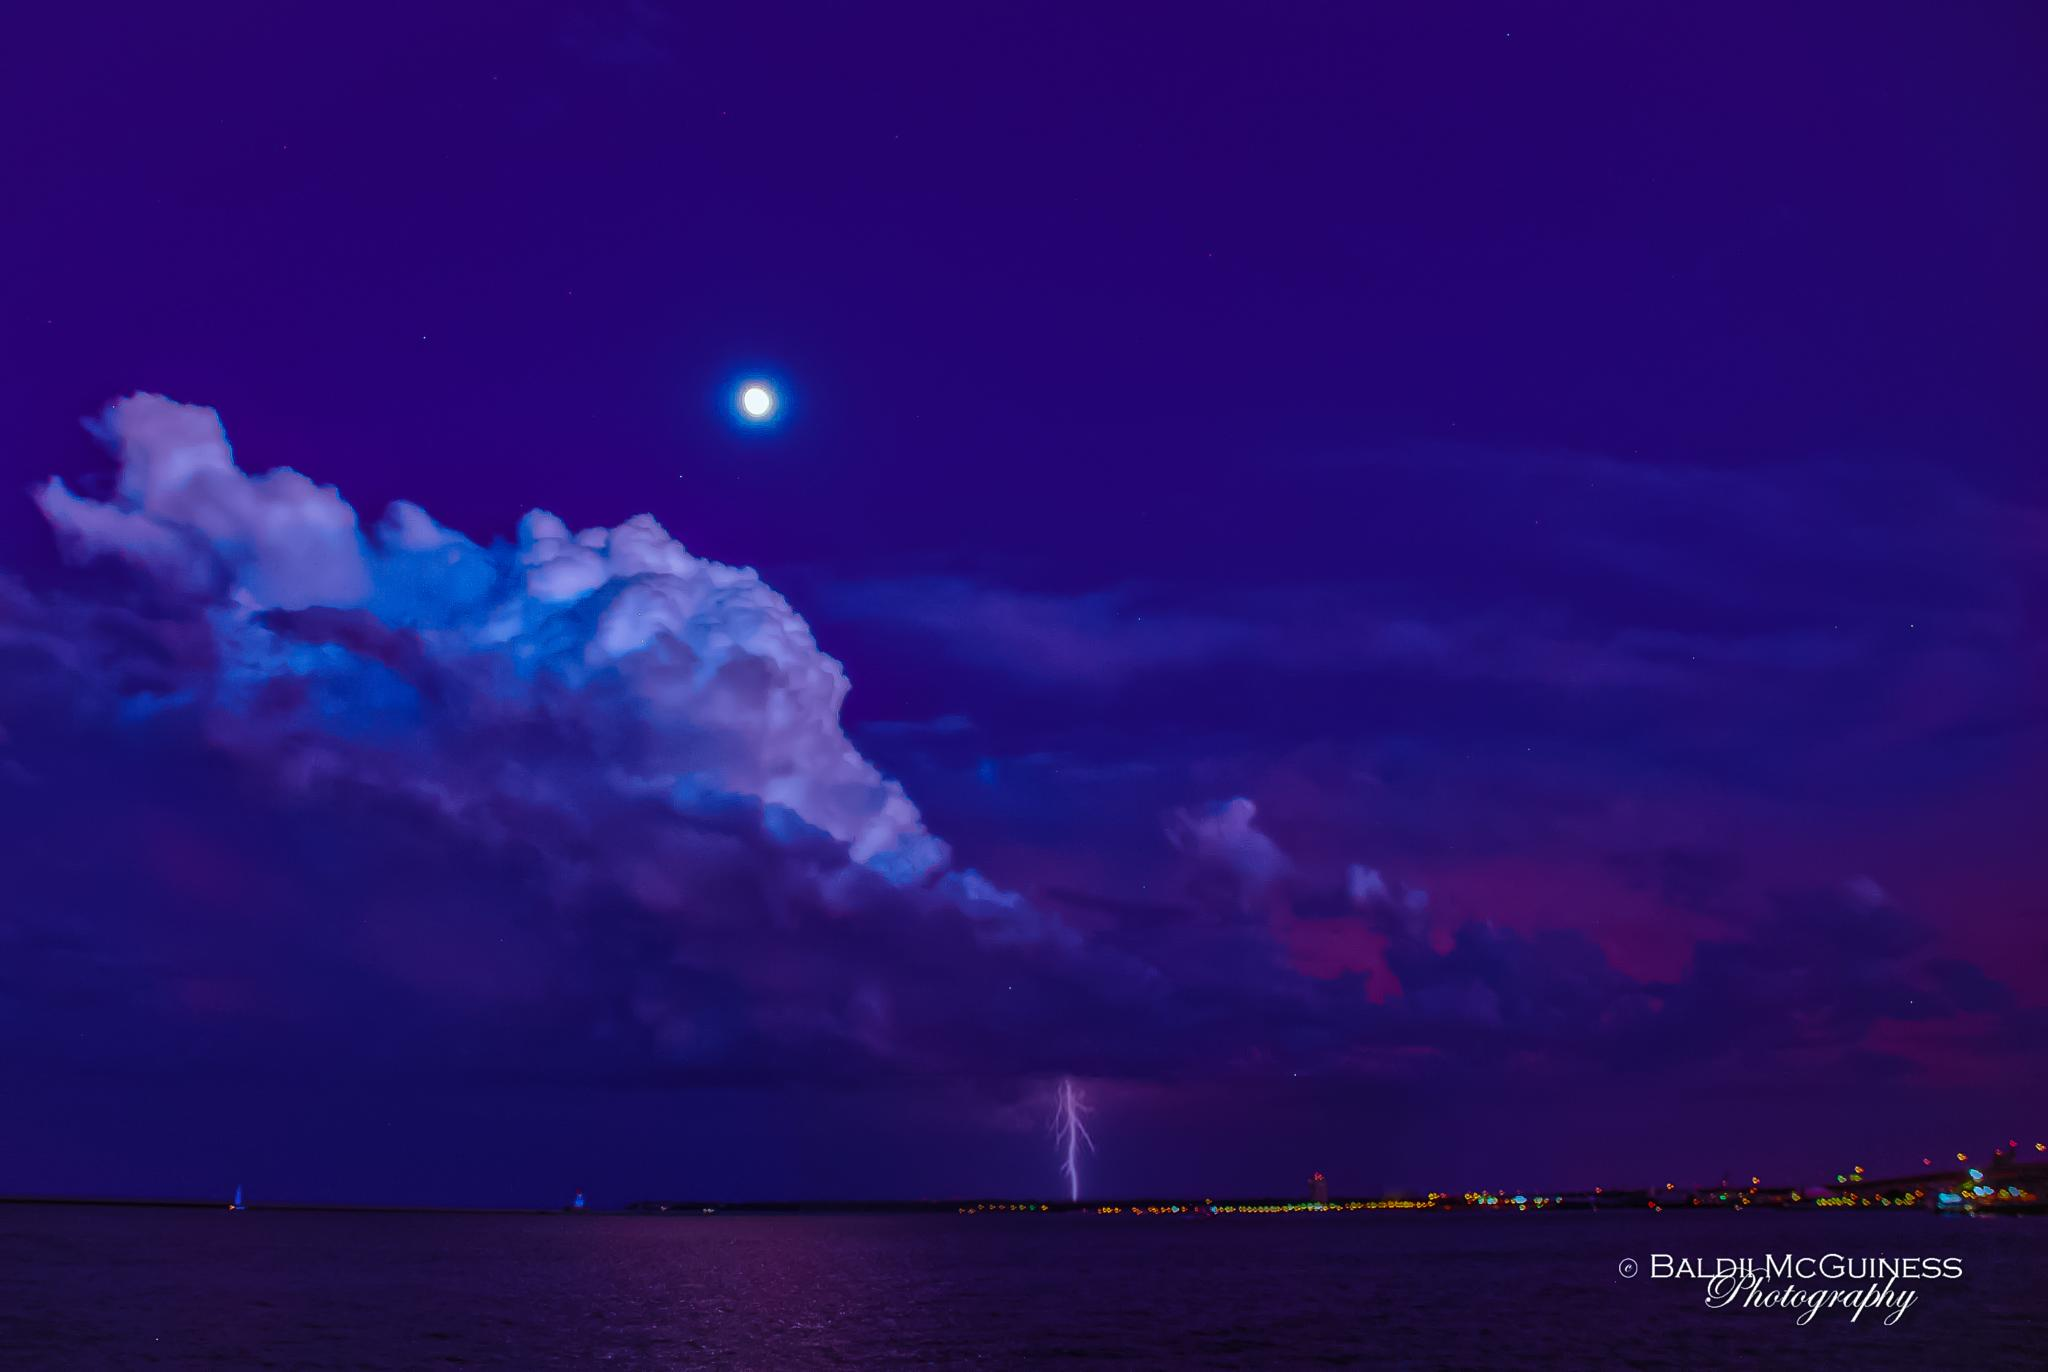 Summer Storm by baldii.mcguiness